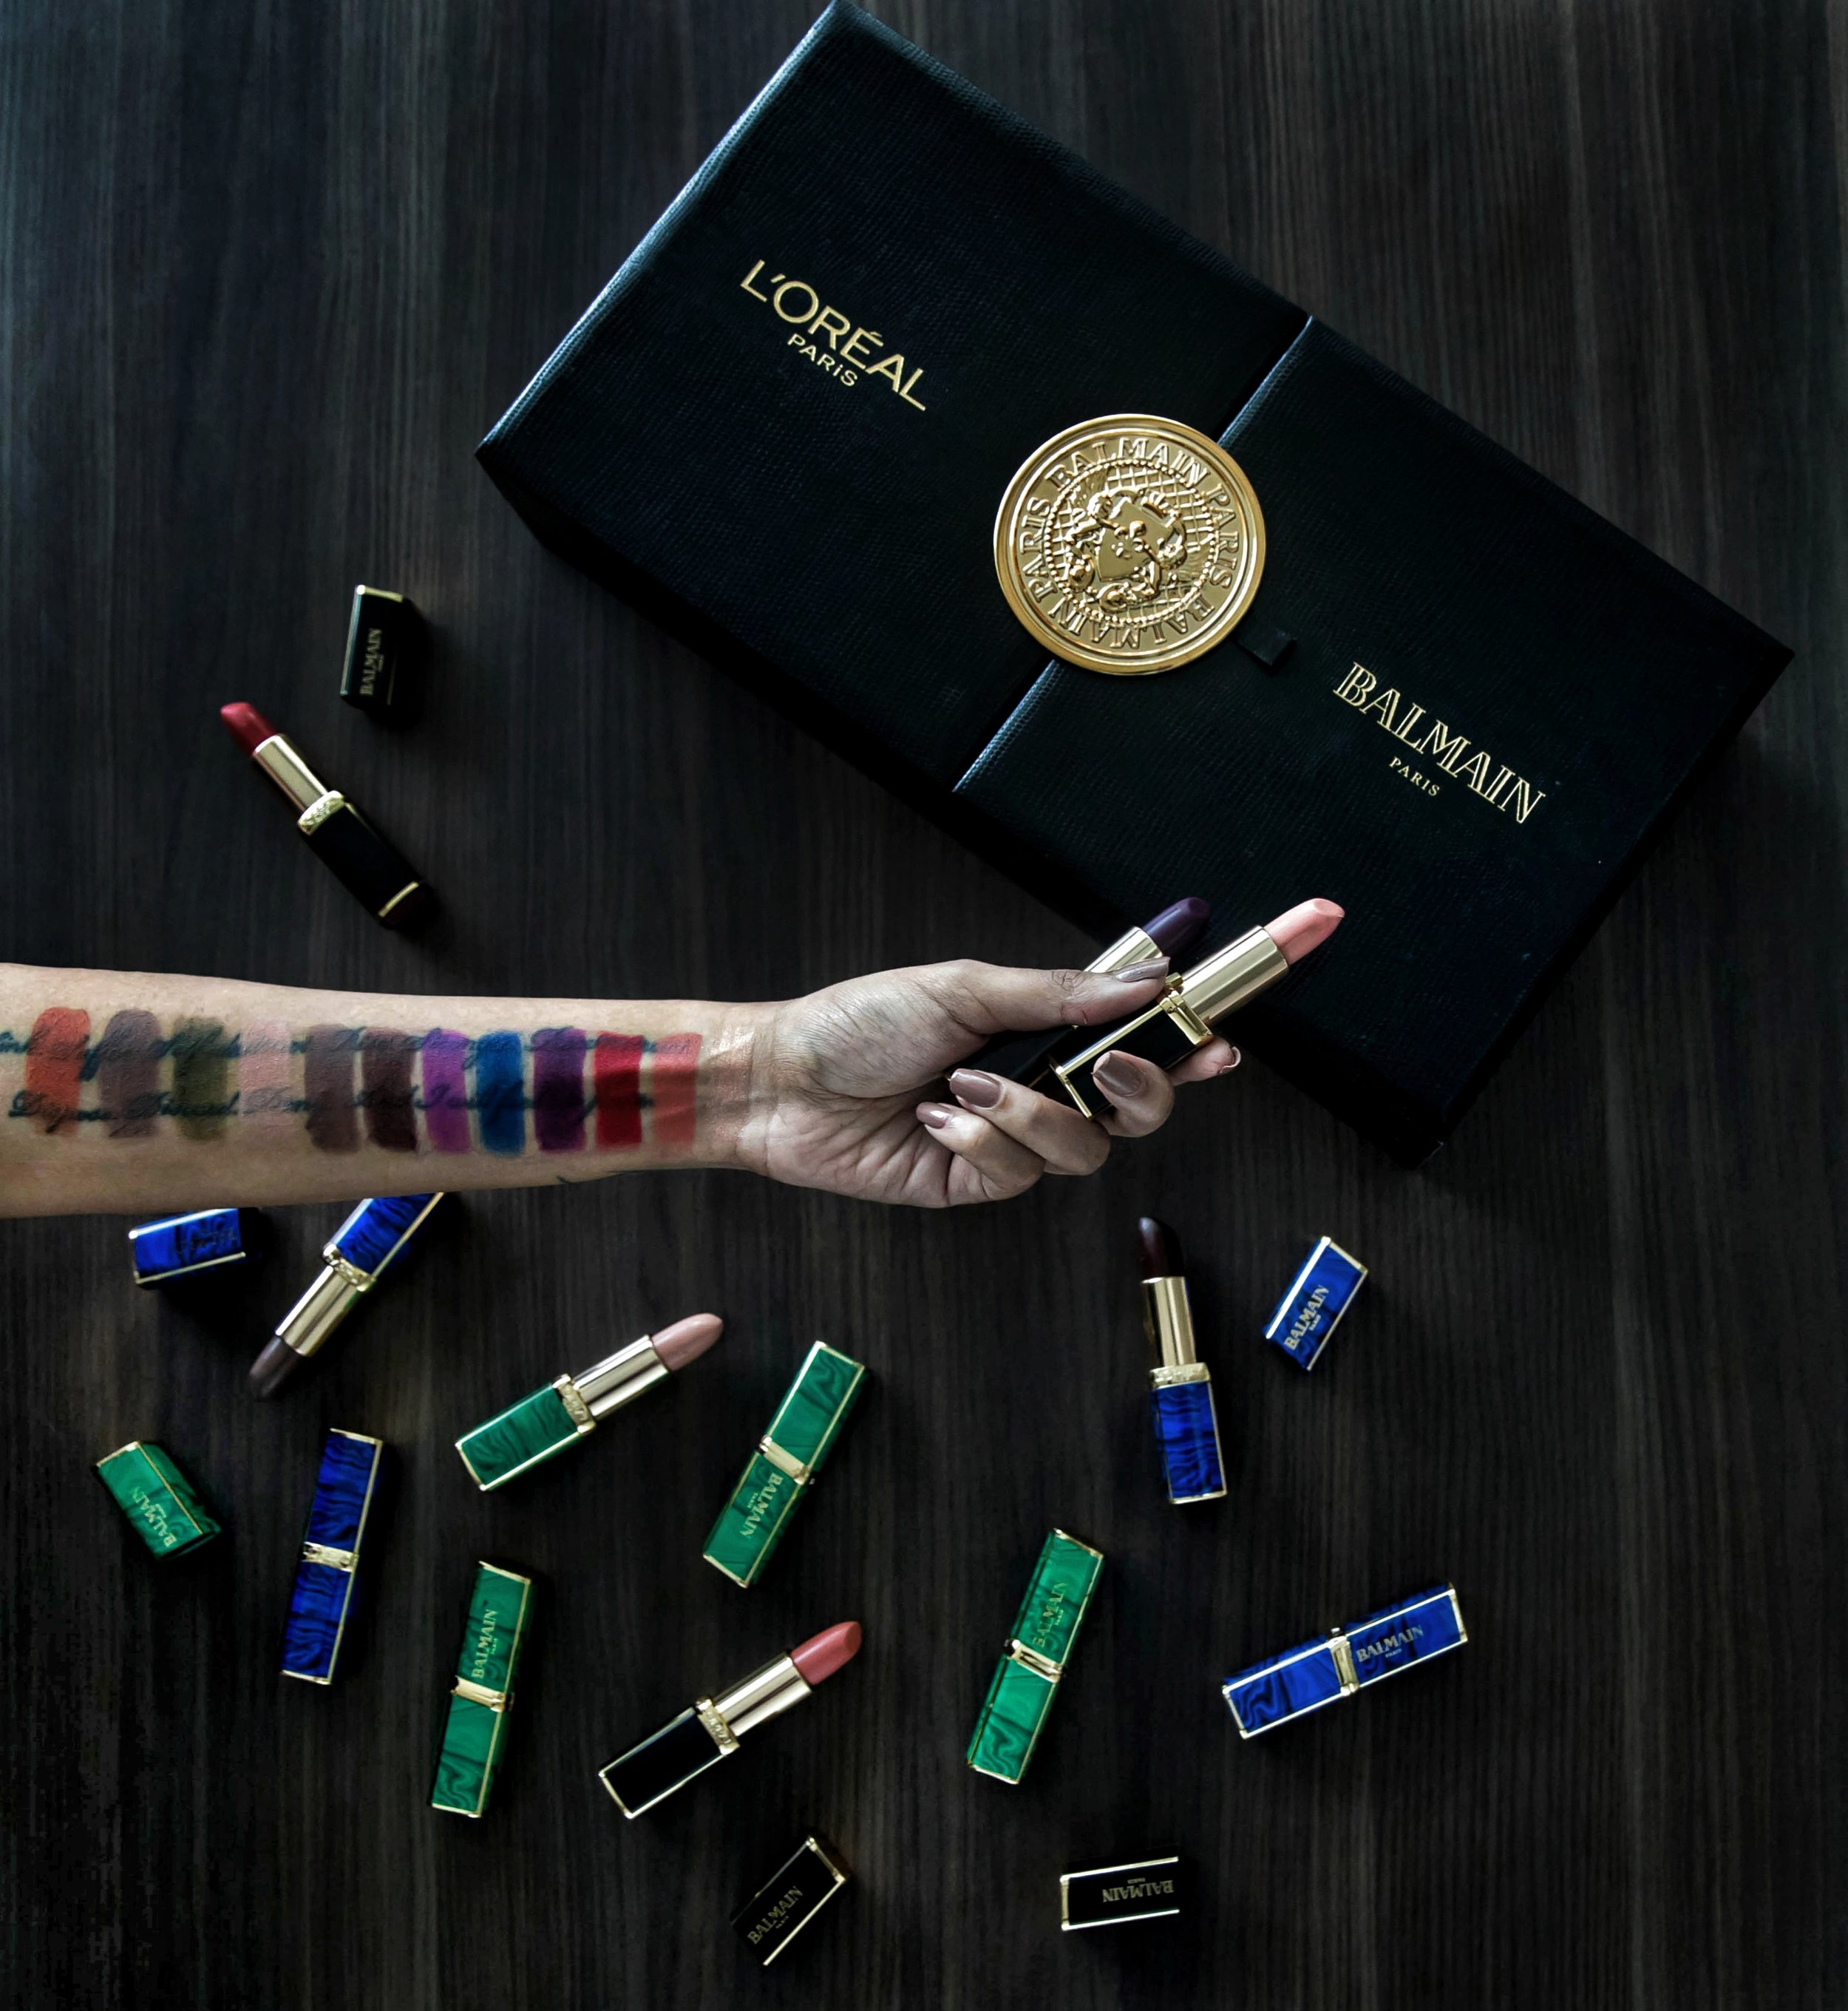 Loreal-Balmain-Olivier-Rousting-Swatches-1